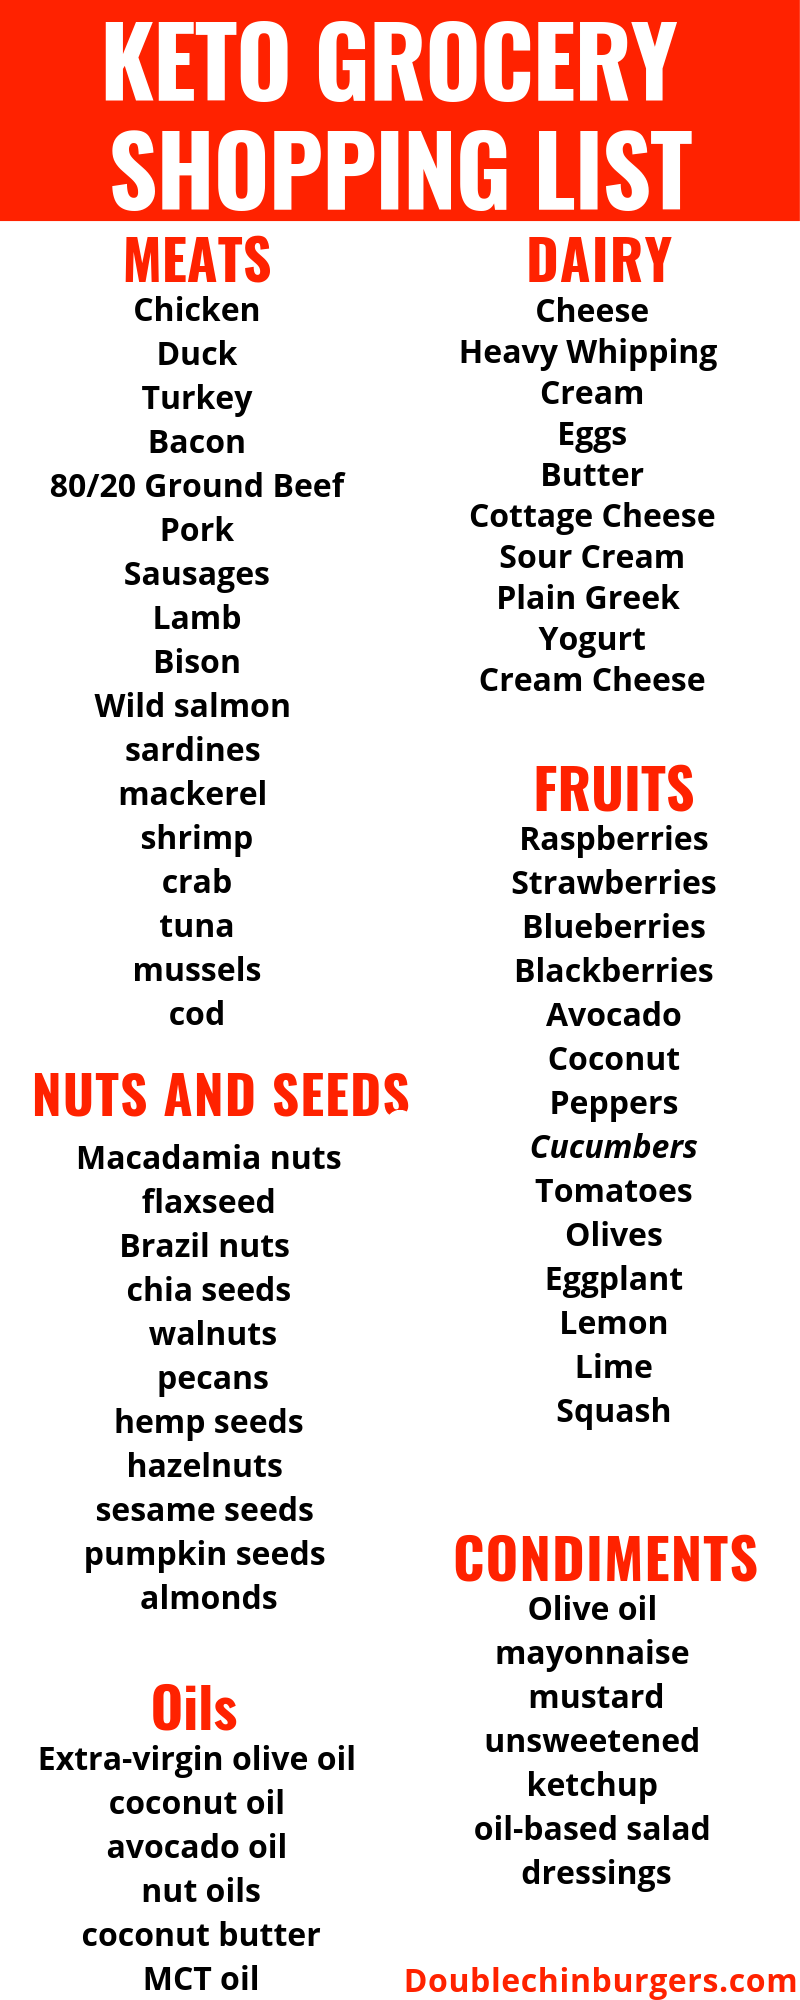 Keto Grocery Shopping List  #ketodietforbeginners